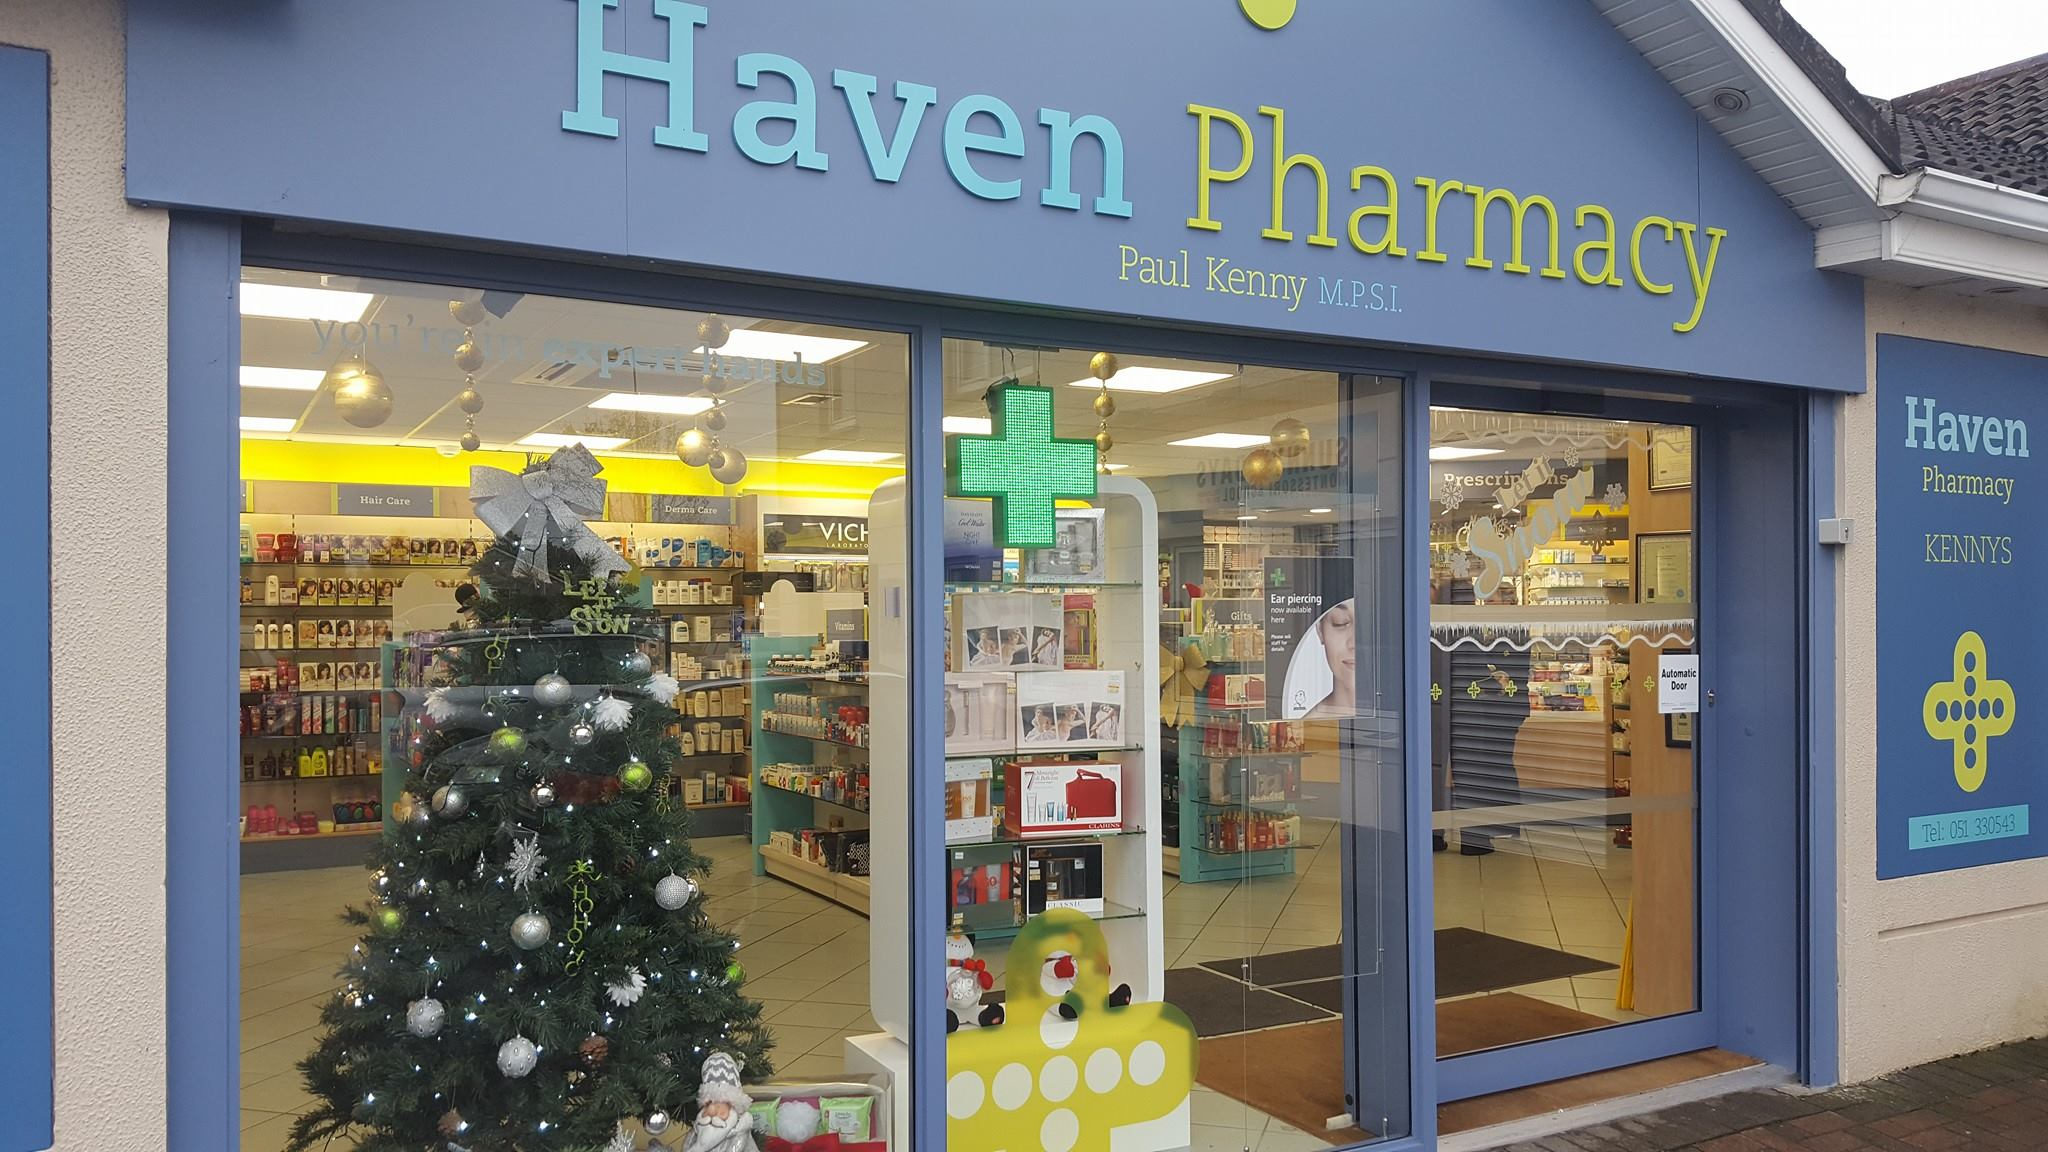 Geoff is live from Haven Pharmacy this Thursday